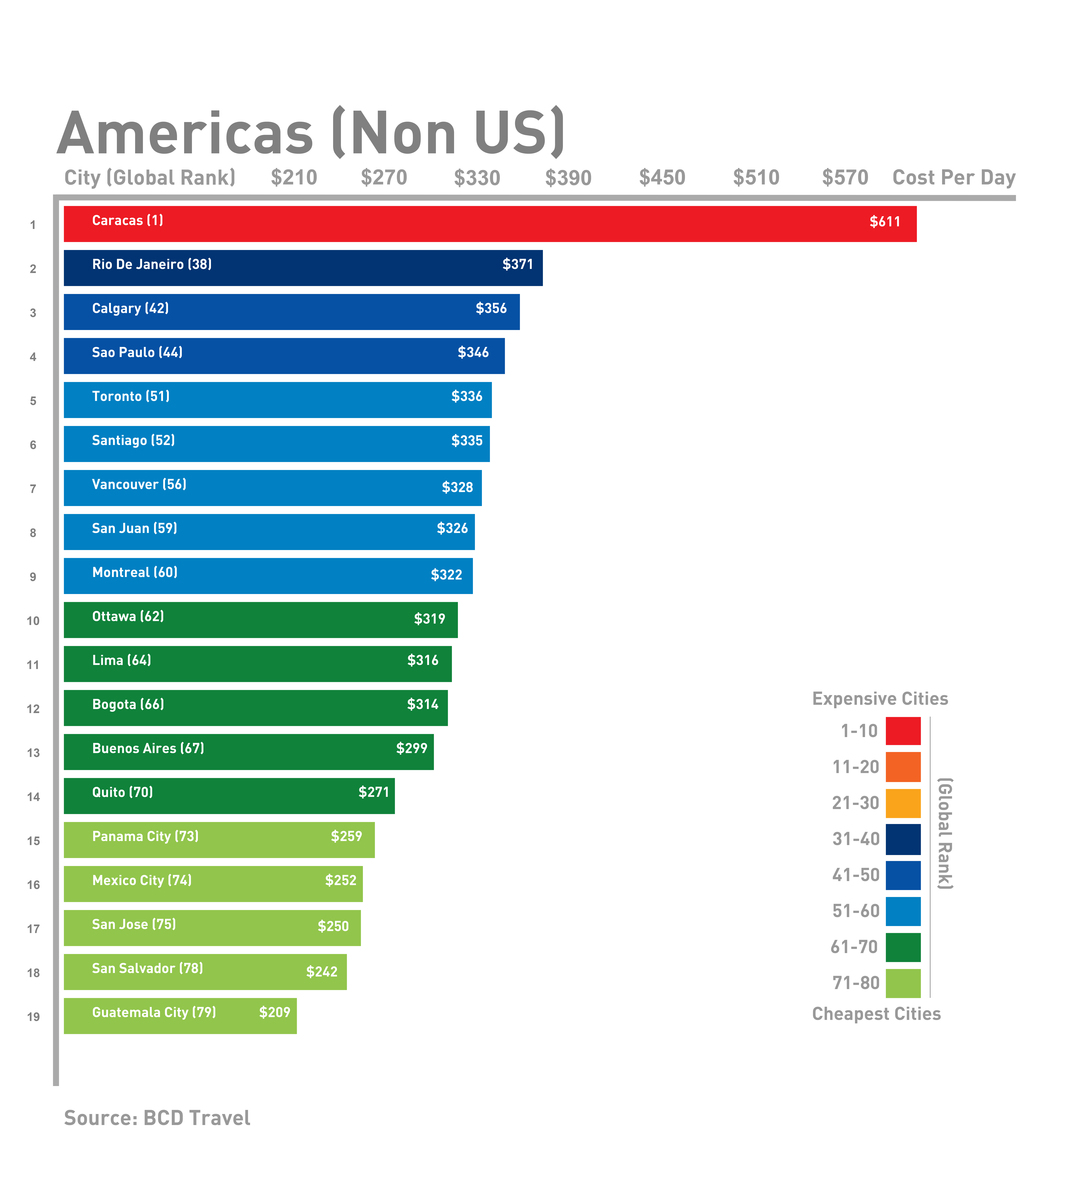 Americas (non-US) business travel costs